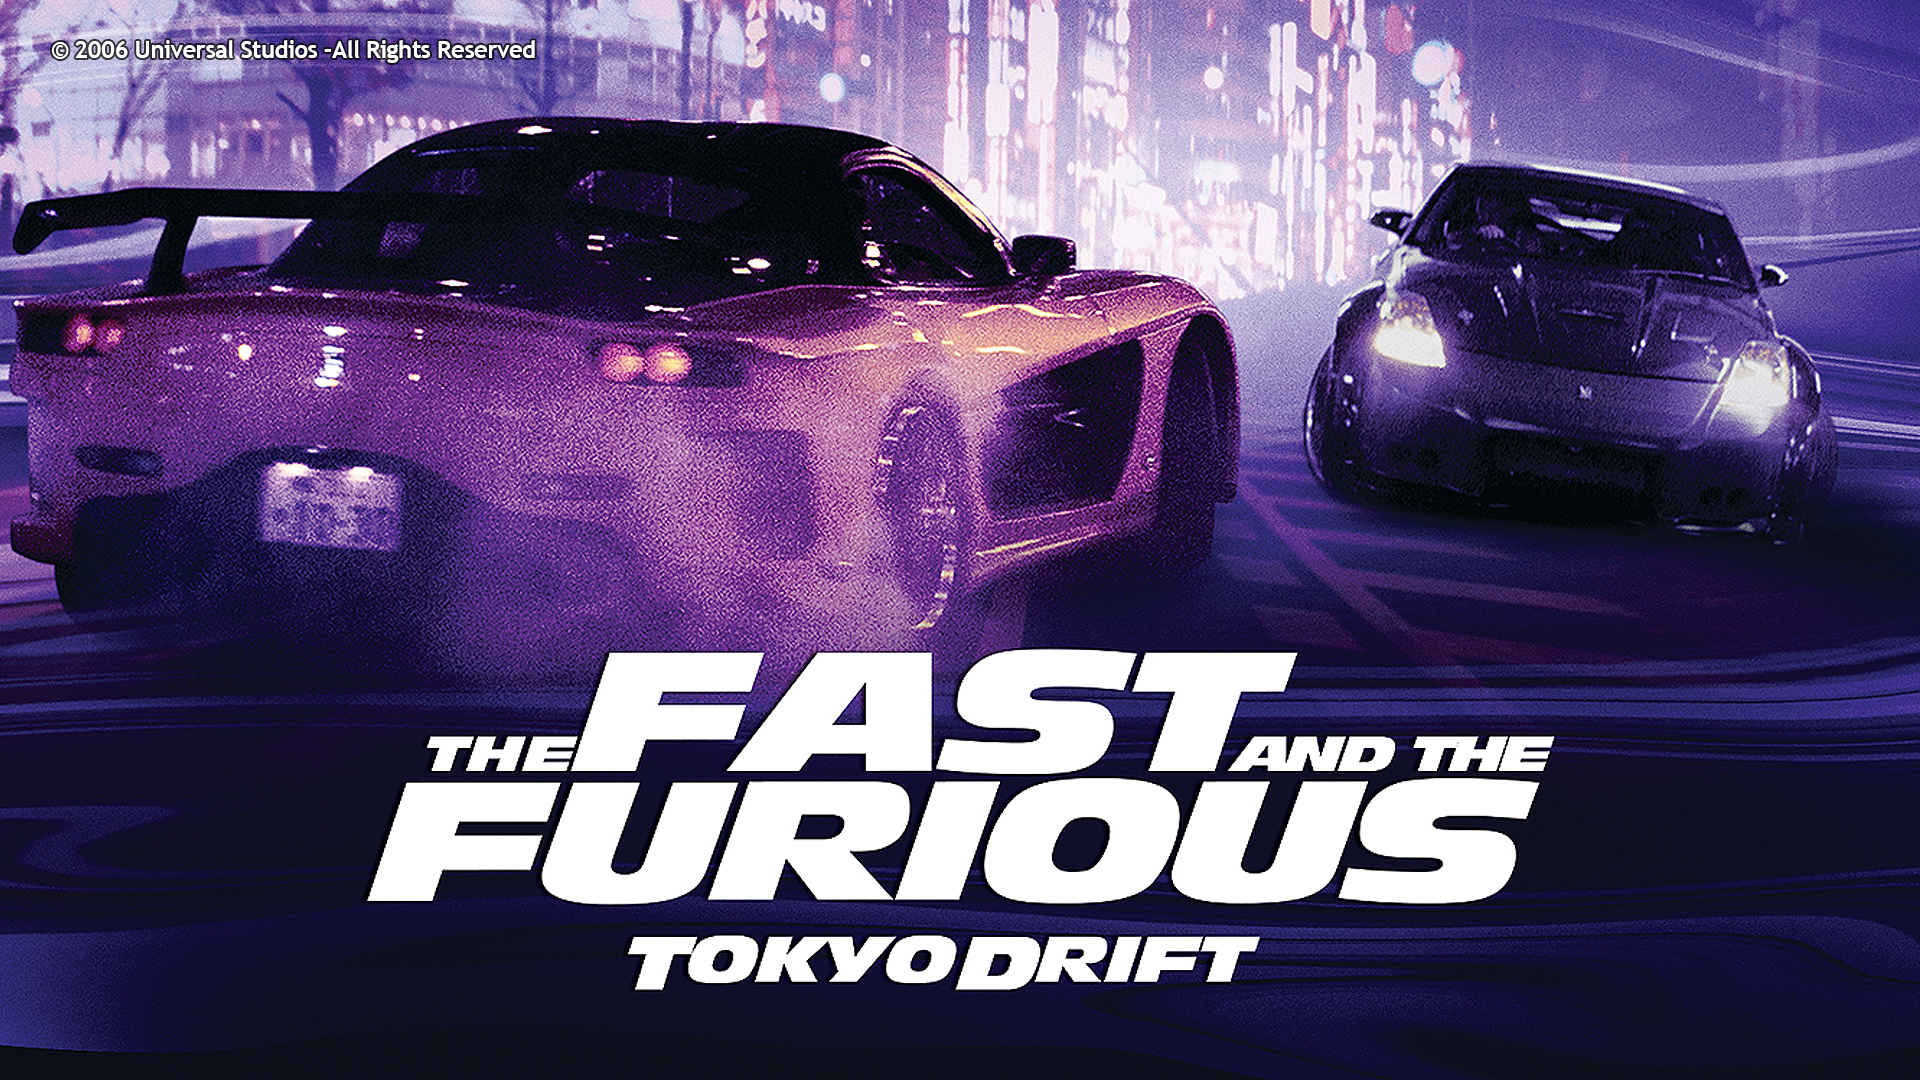 THE FAST&THE FURIOUS: TOKYO DRIFT (2006)